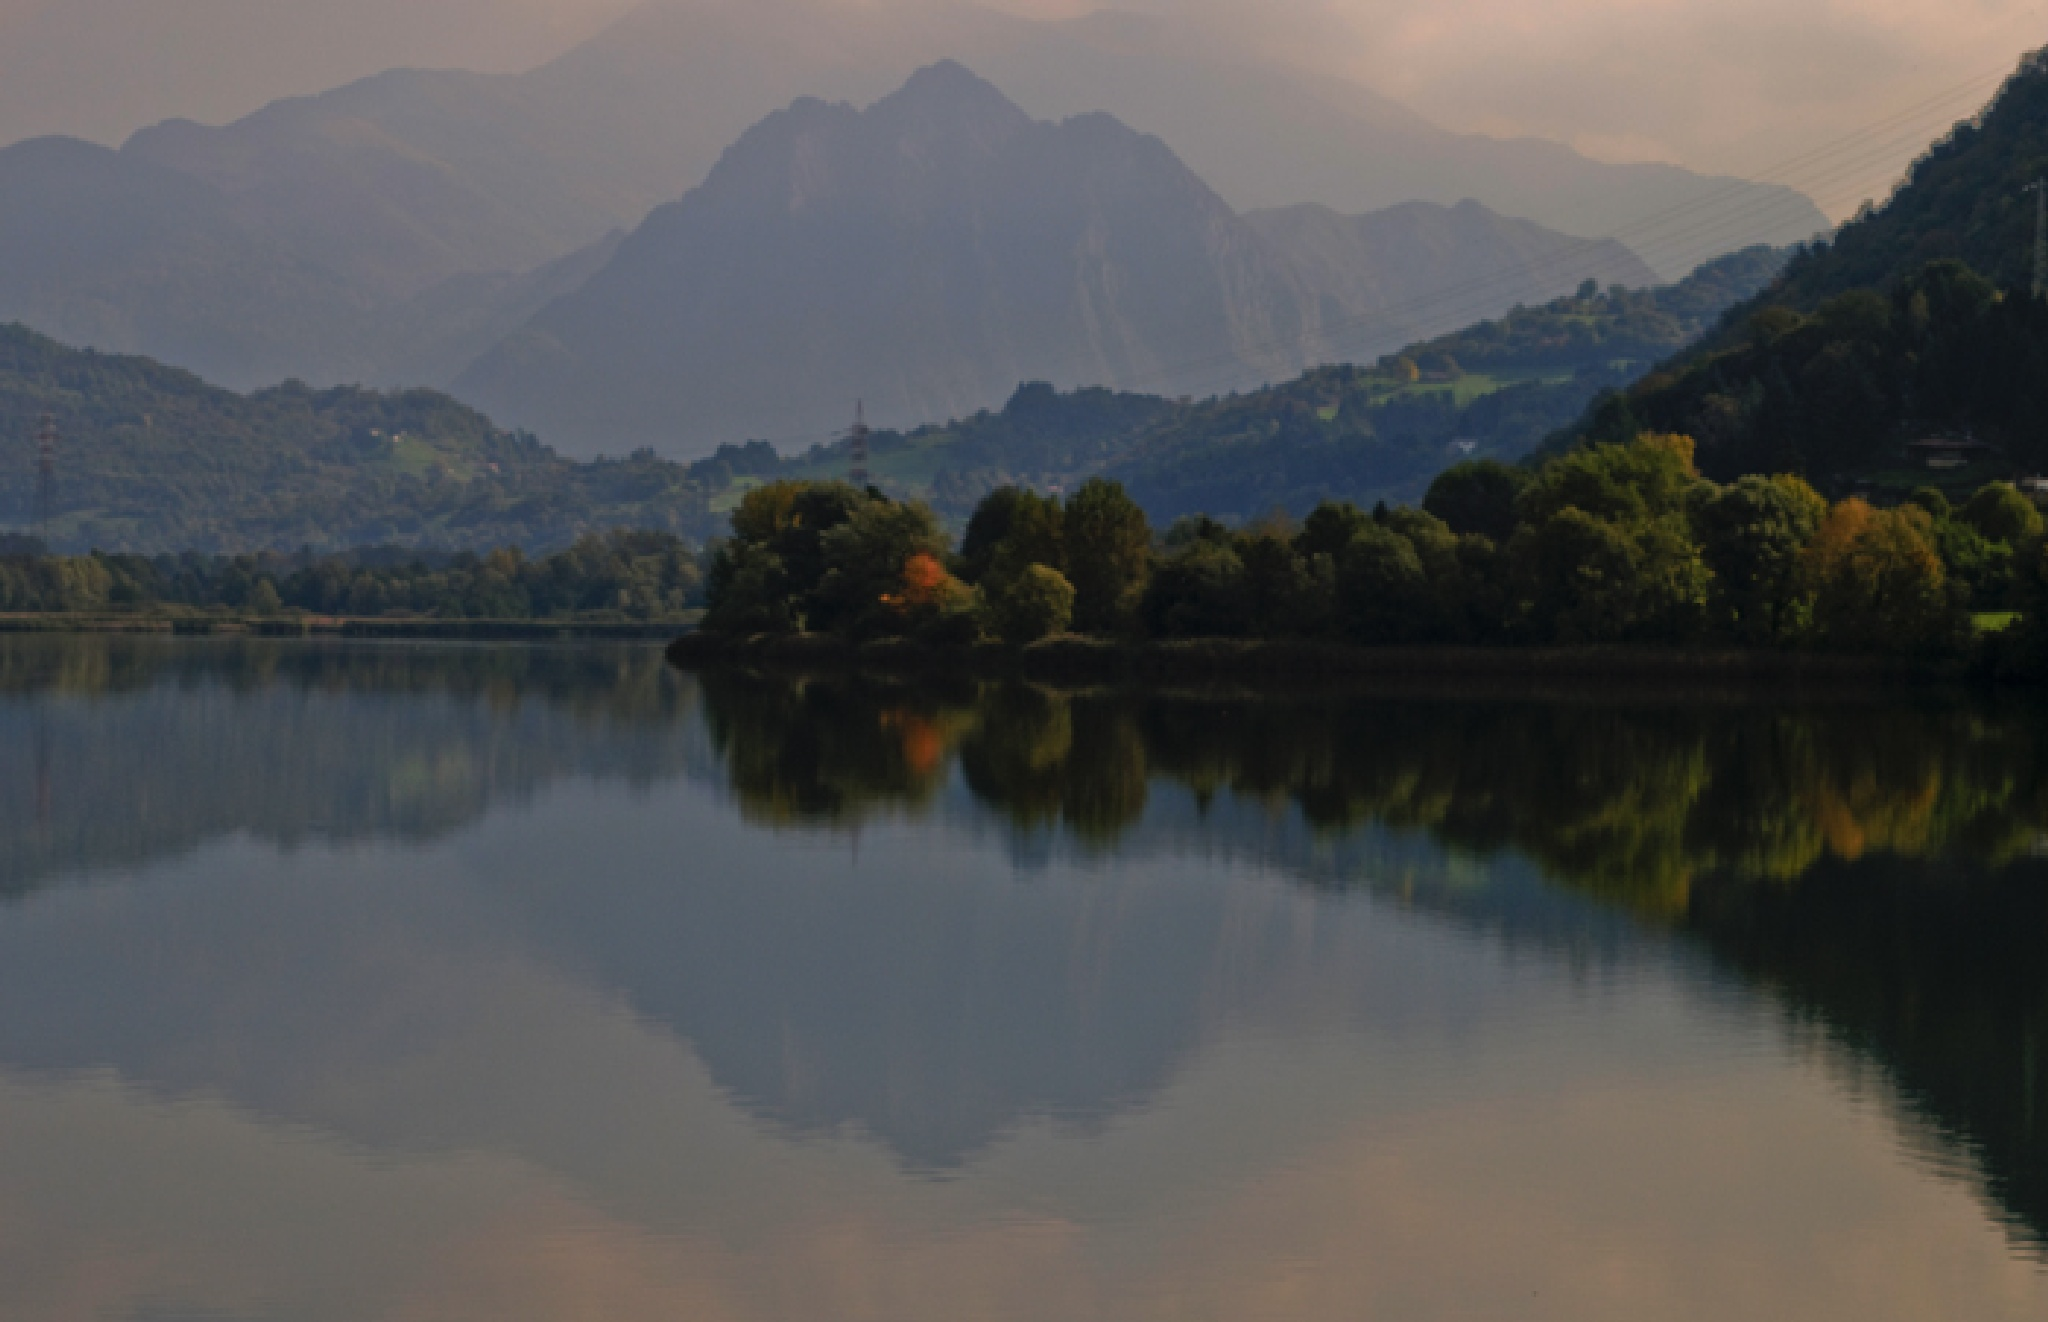 Reflexions on lake Endine. by antónio costa